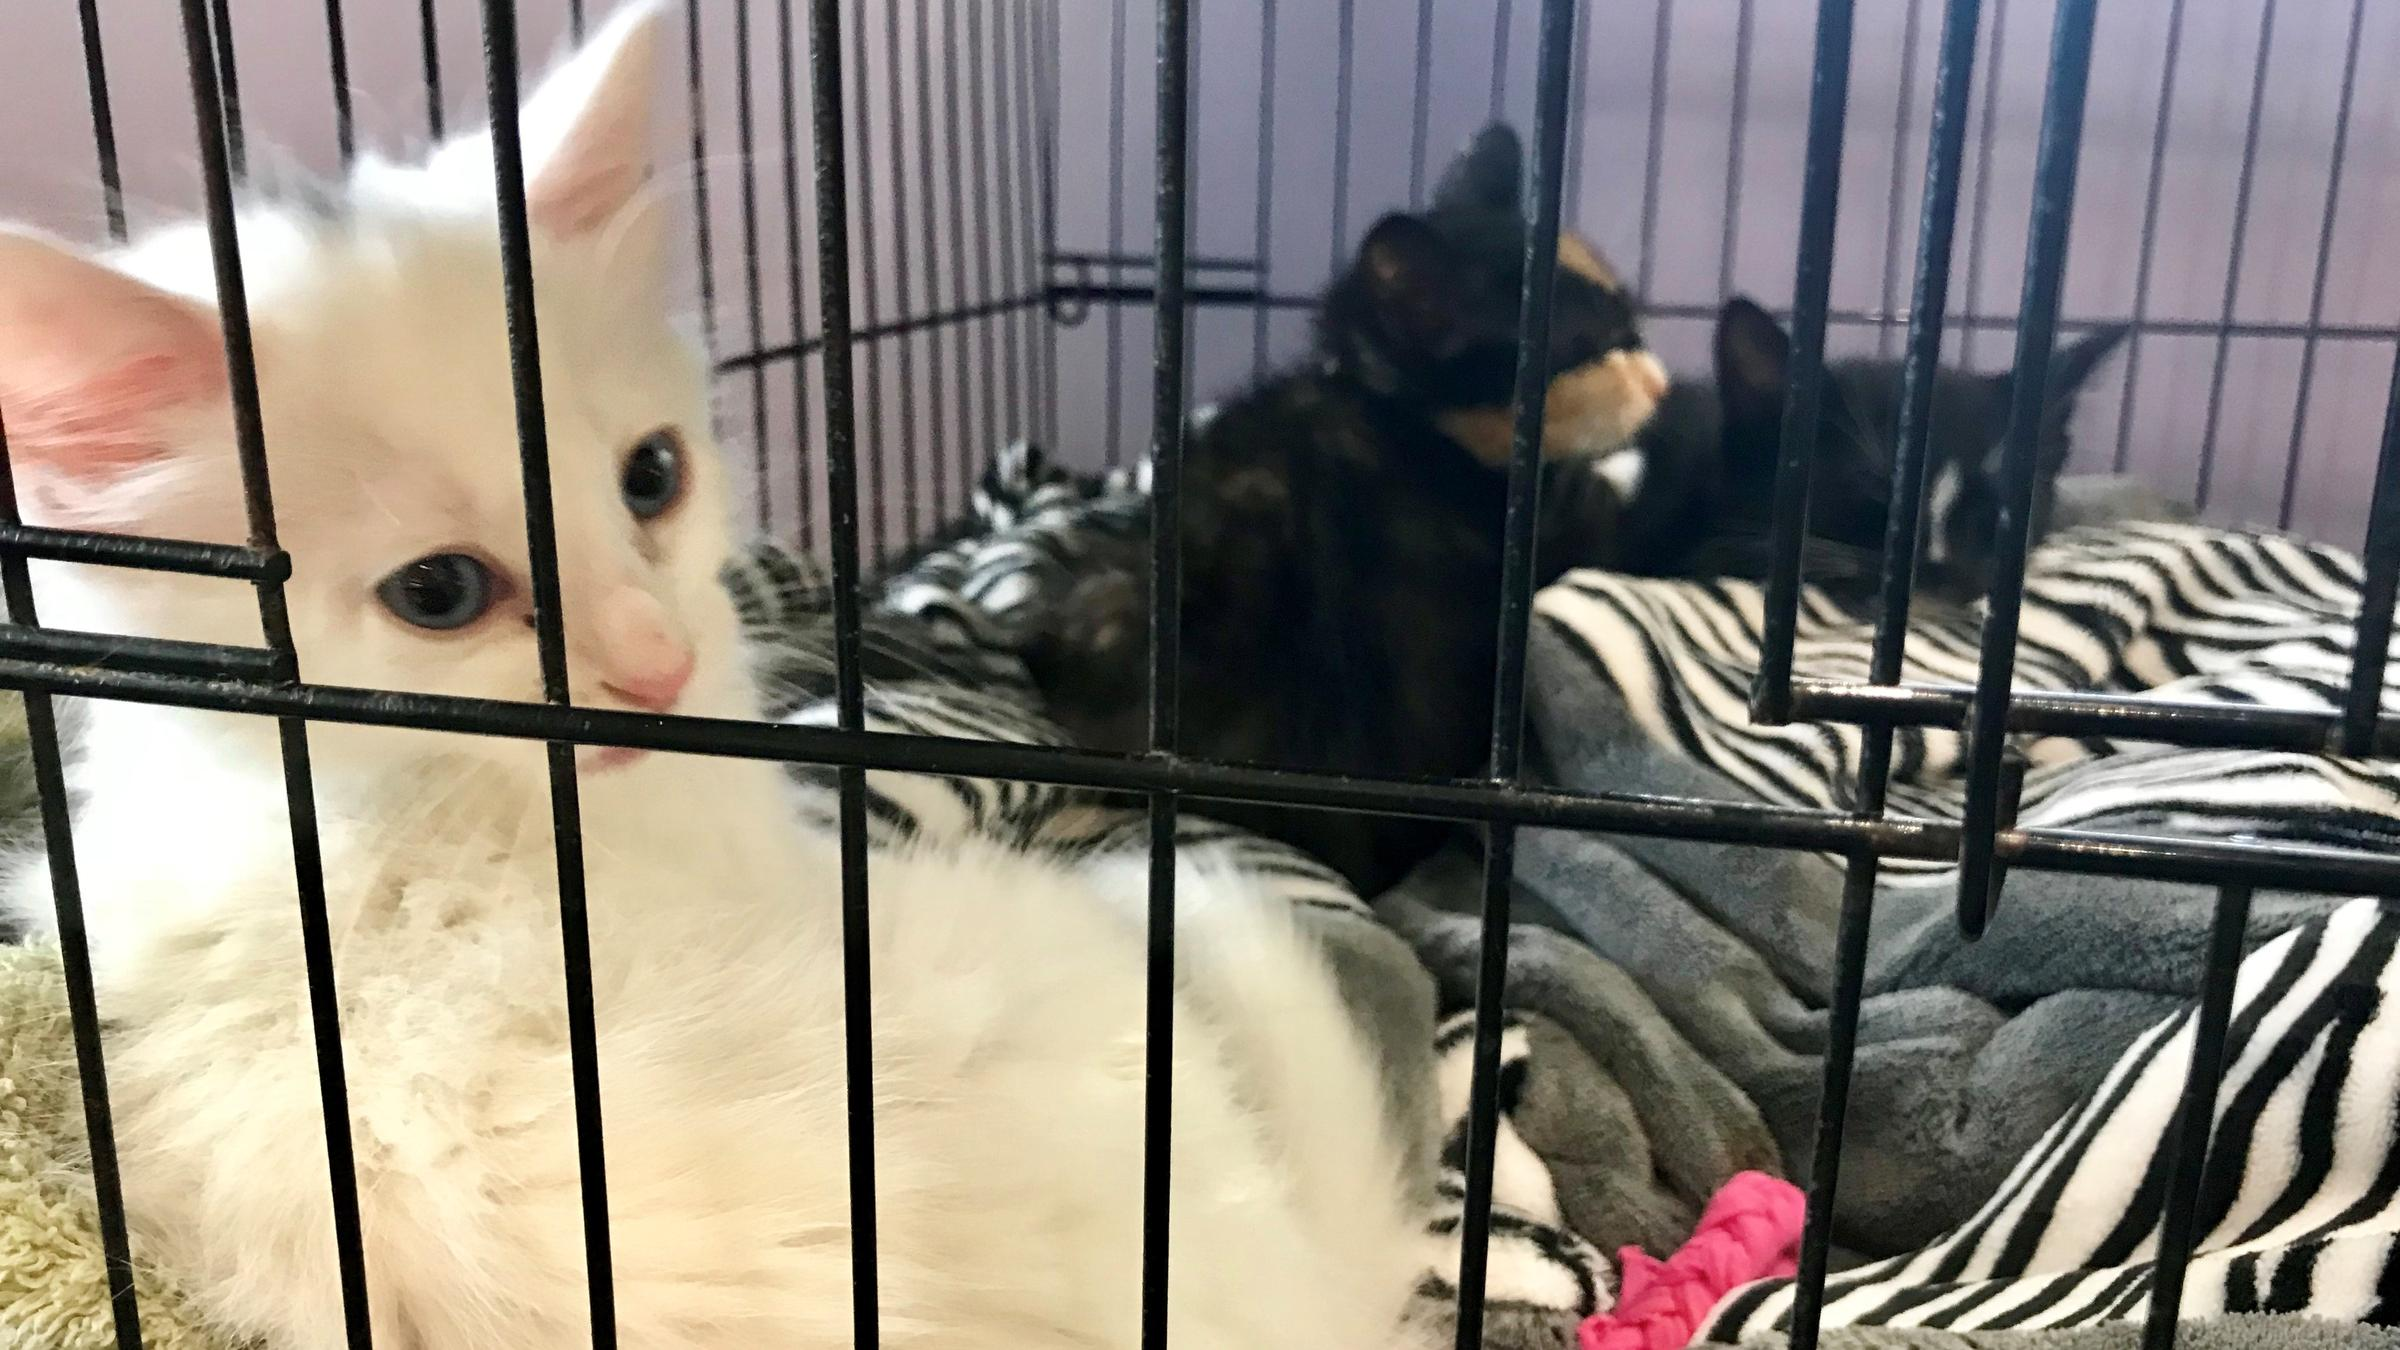 More Than 900 Cats, Dogs Available To Adopt At Jacksonville